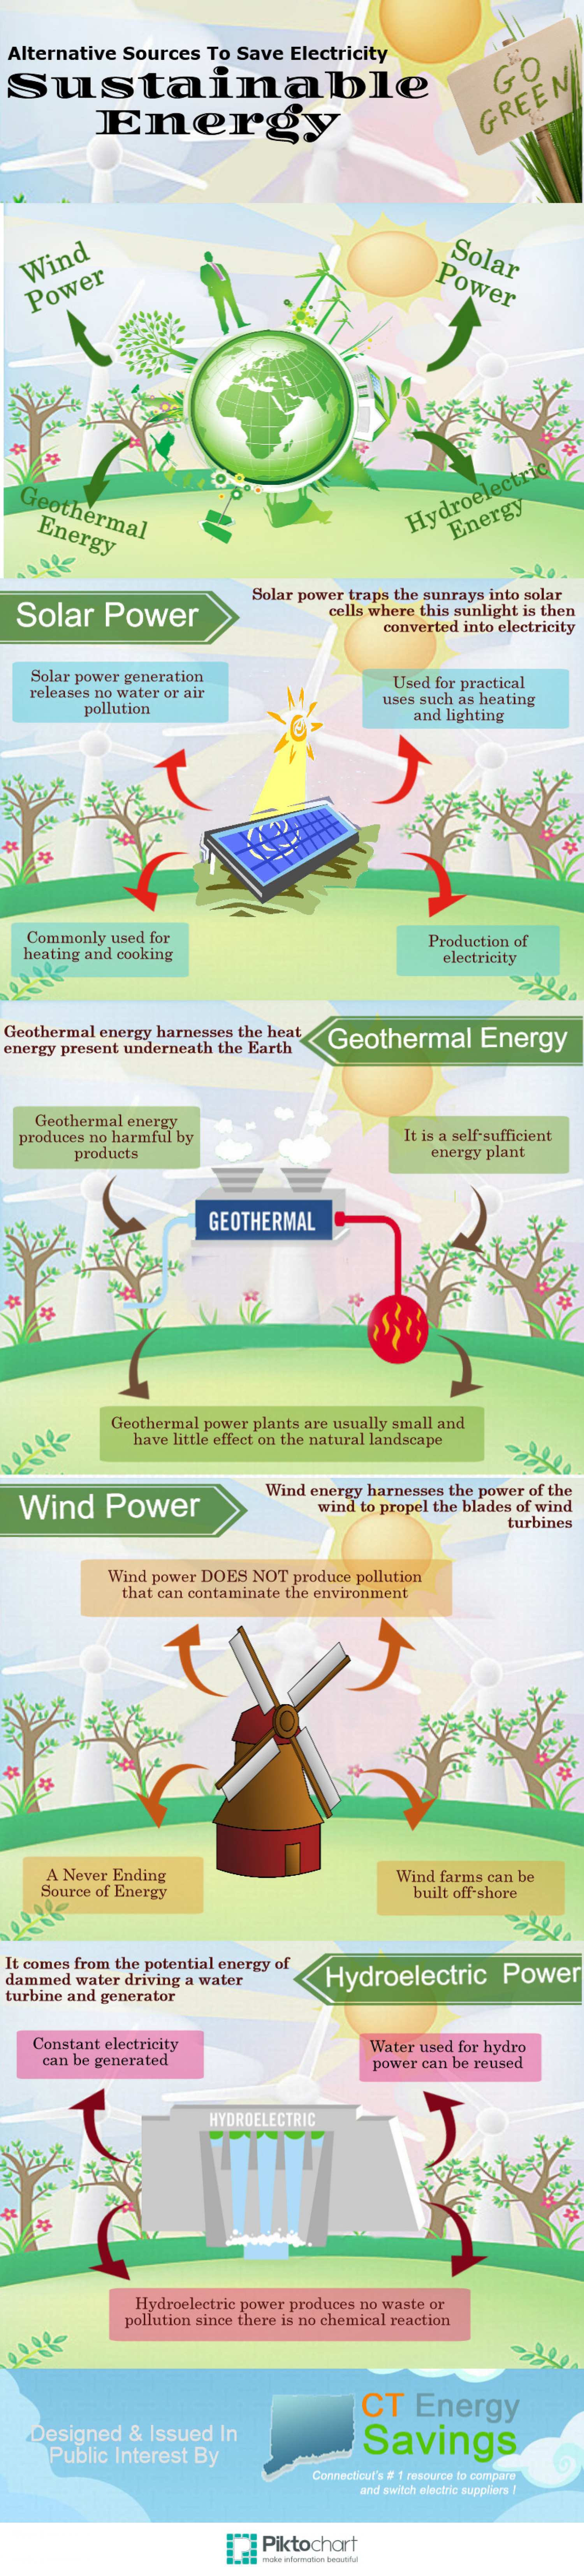 Alternative Sources To Save Electricity: Sustainable Energy Infographic